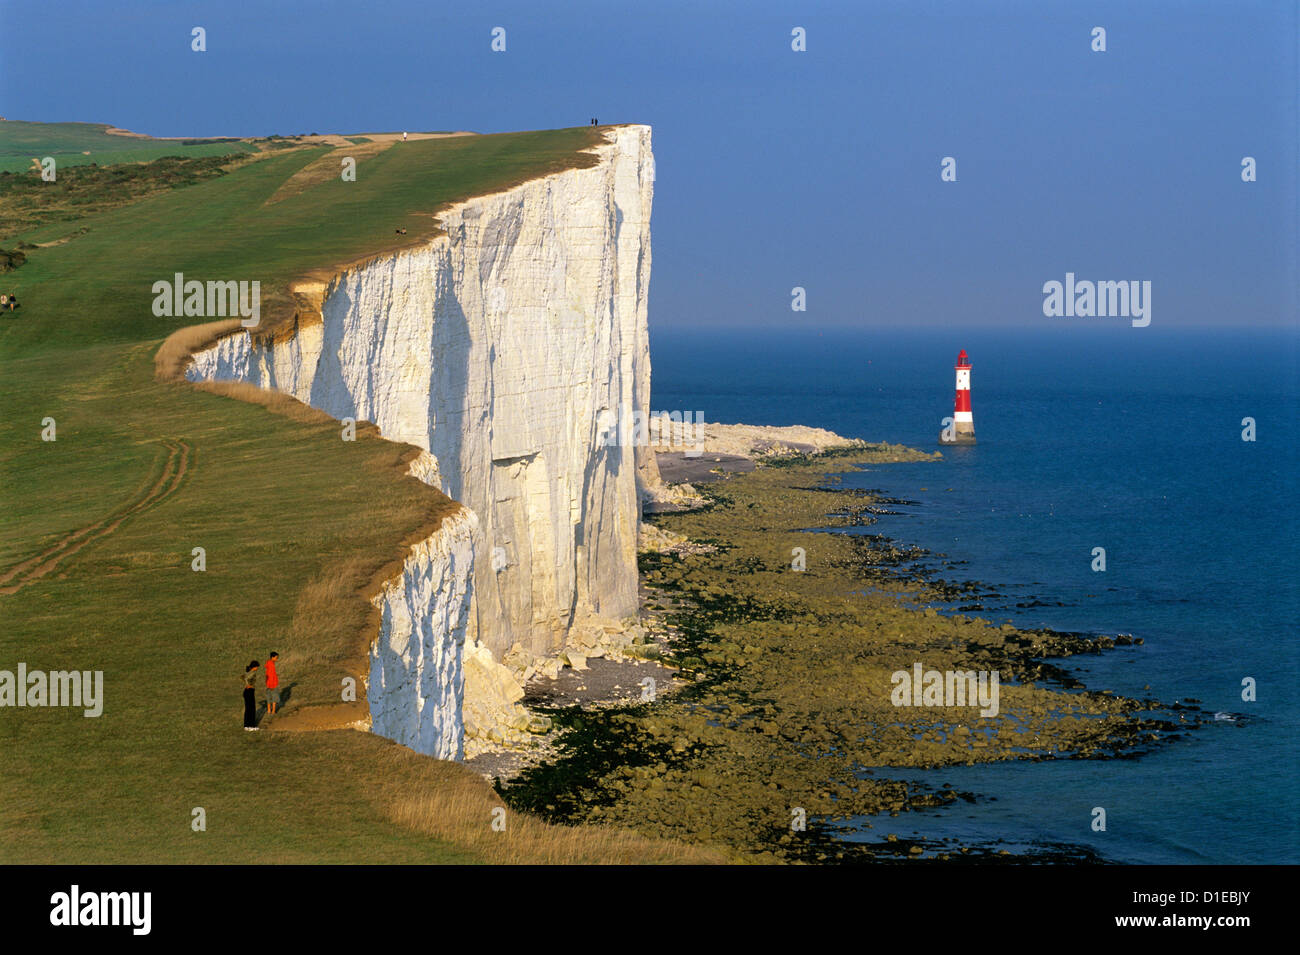 Beachy Head Lighthouse and chalk cliffs, Eastbourne, East Sussex, England, United Kingdom, Europe - Stock Image